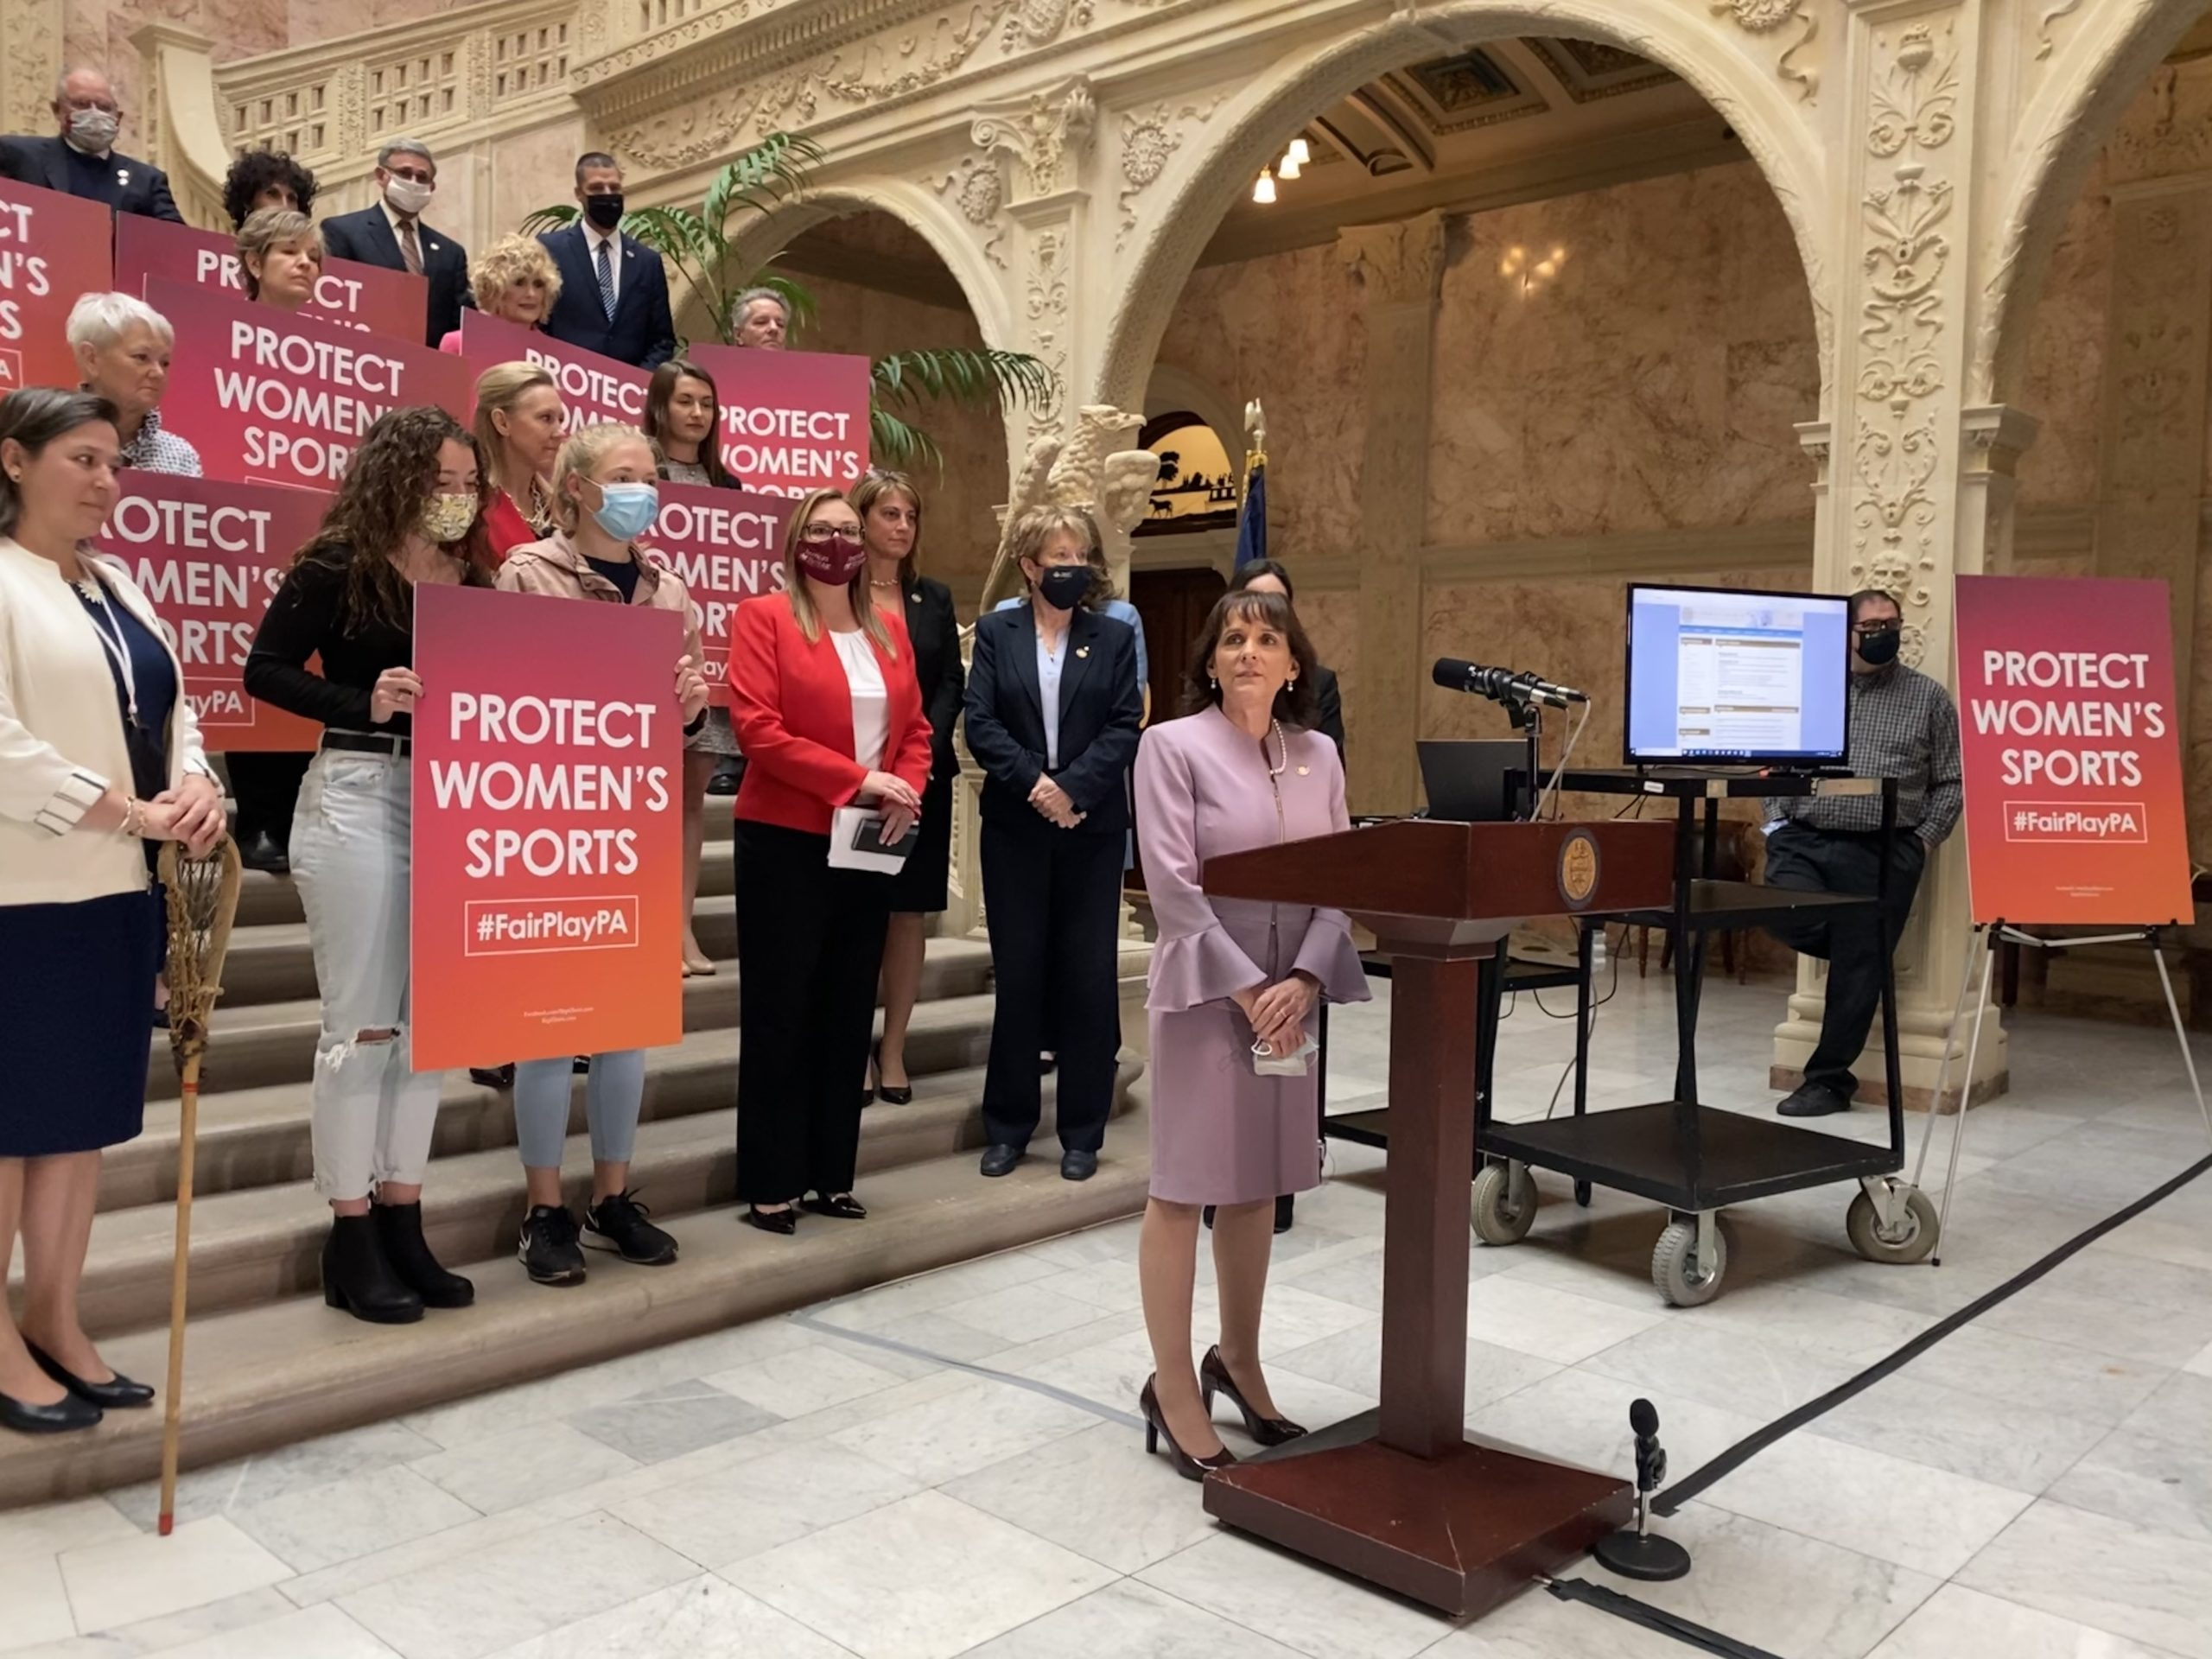 Pa. Republicans join nationwide push to ban transgender girls from women's sports